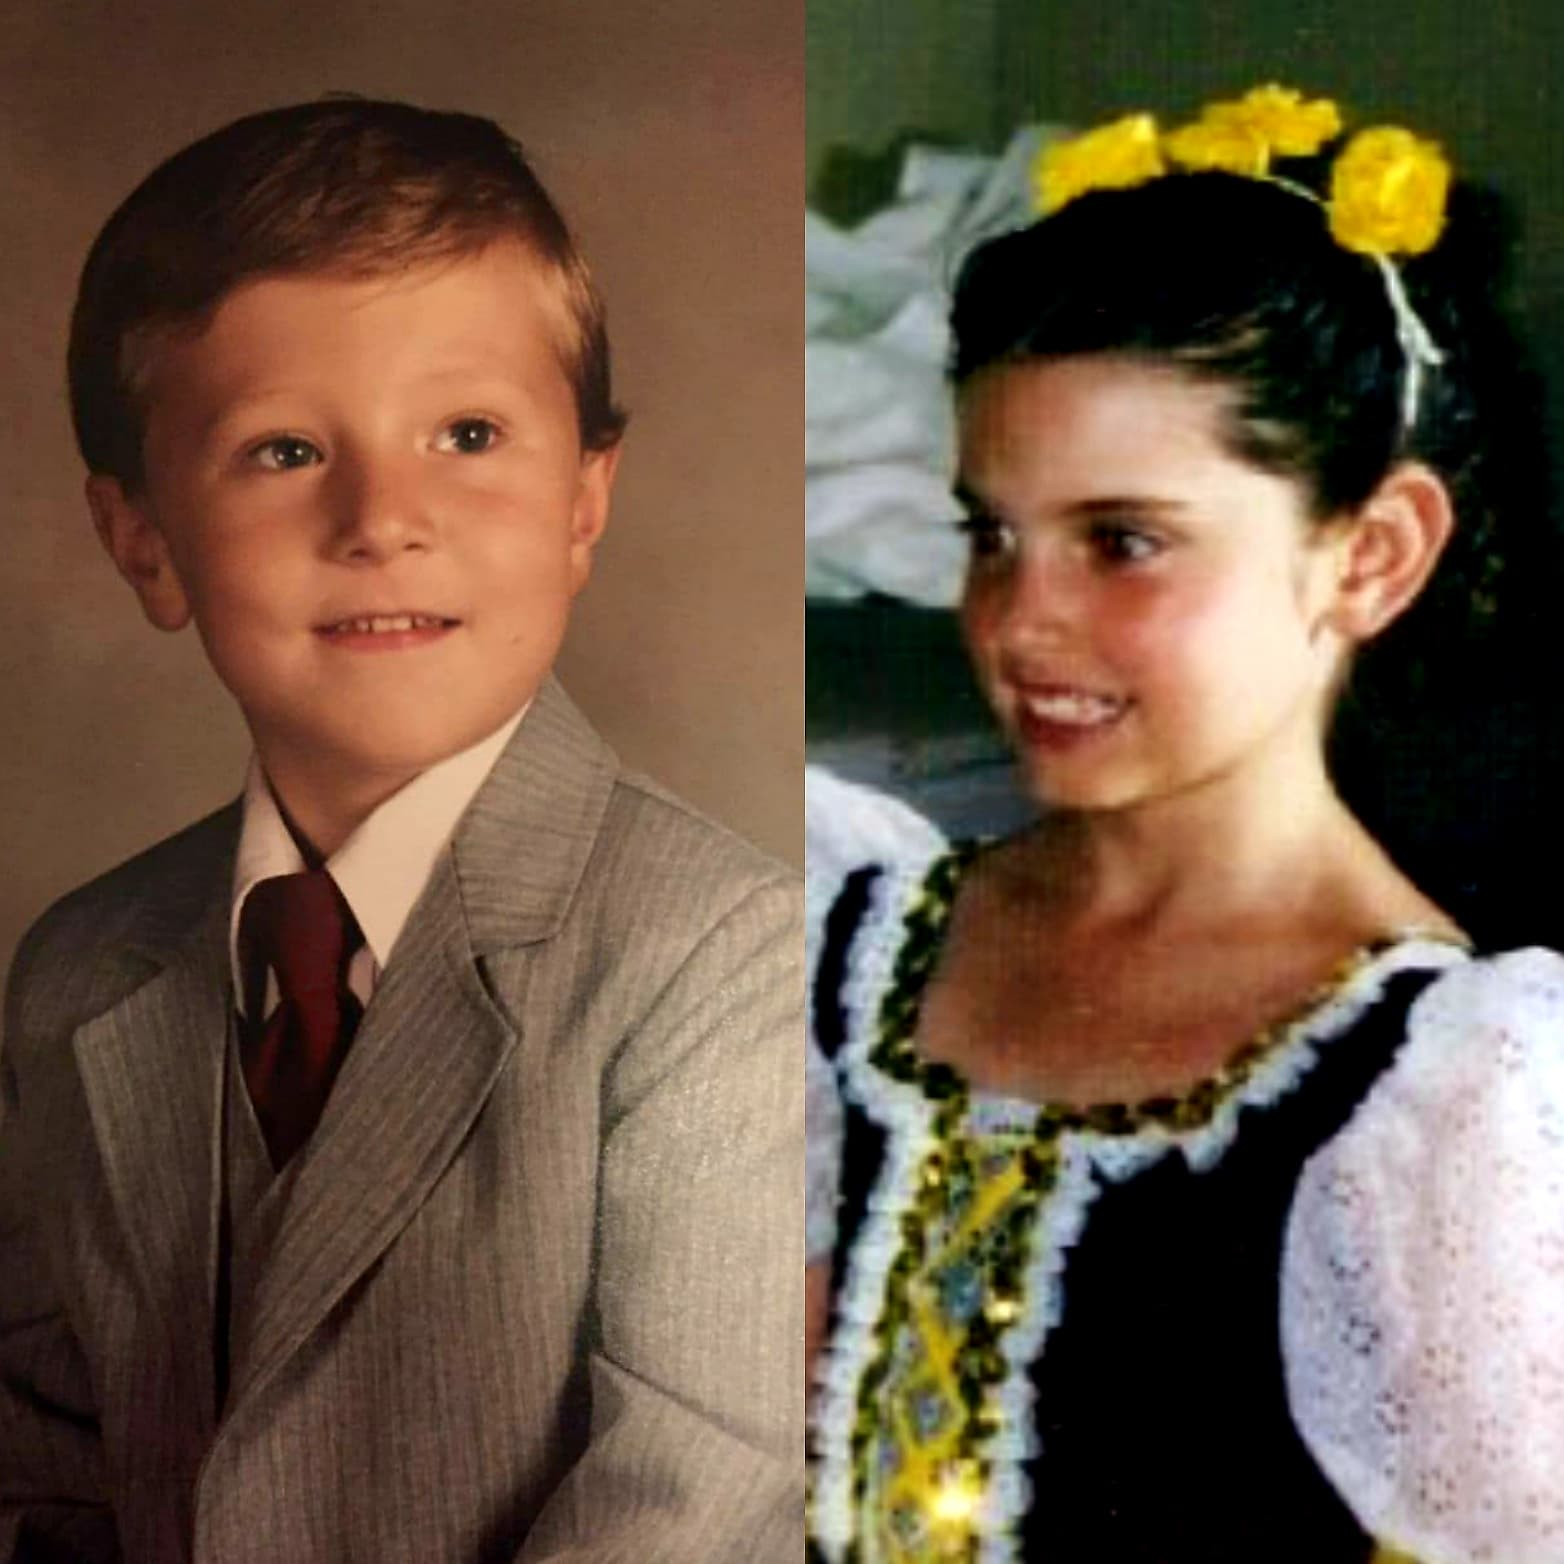 Malia May Johnson and Michael MJ The Terrible Johnson pictures at 7 years old collage